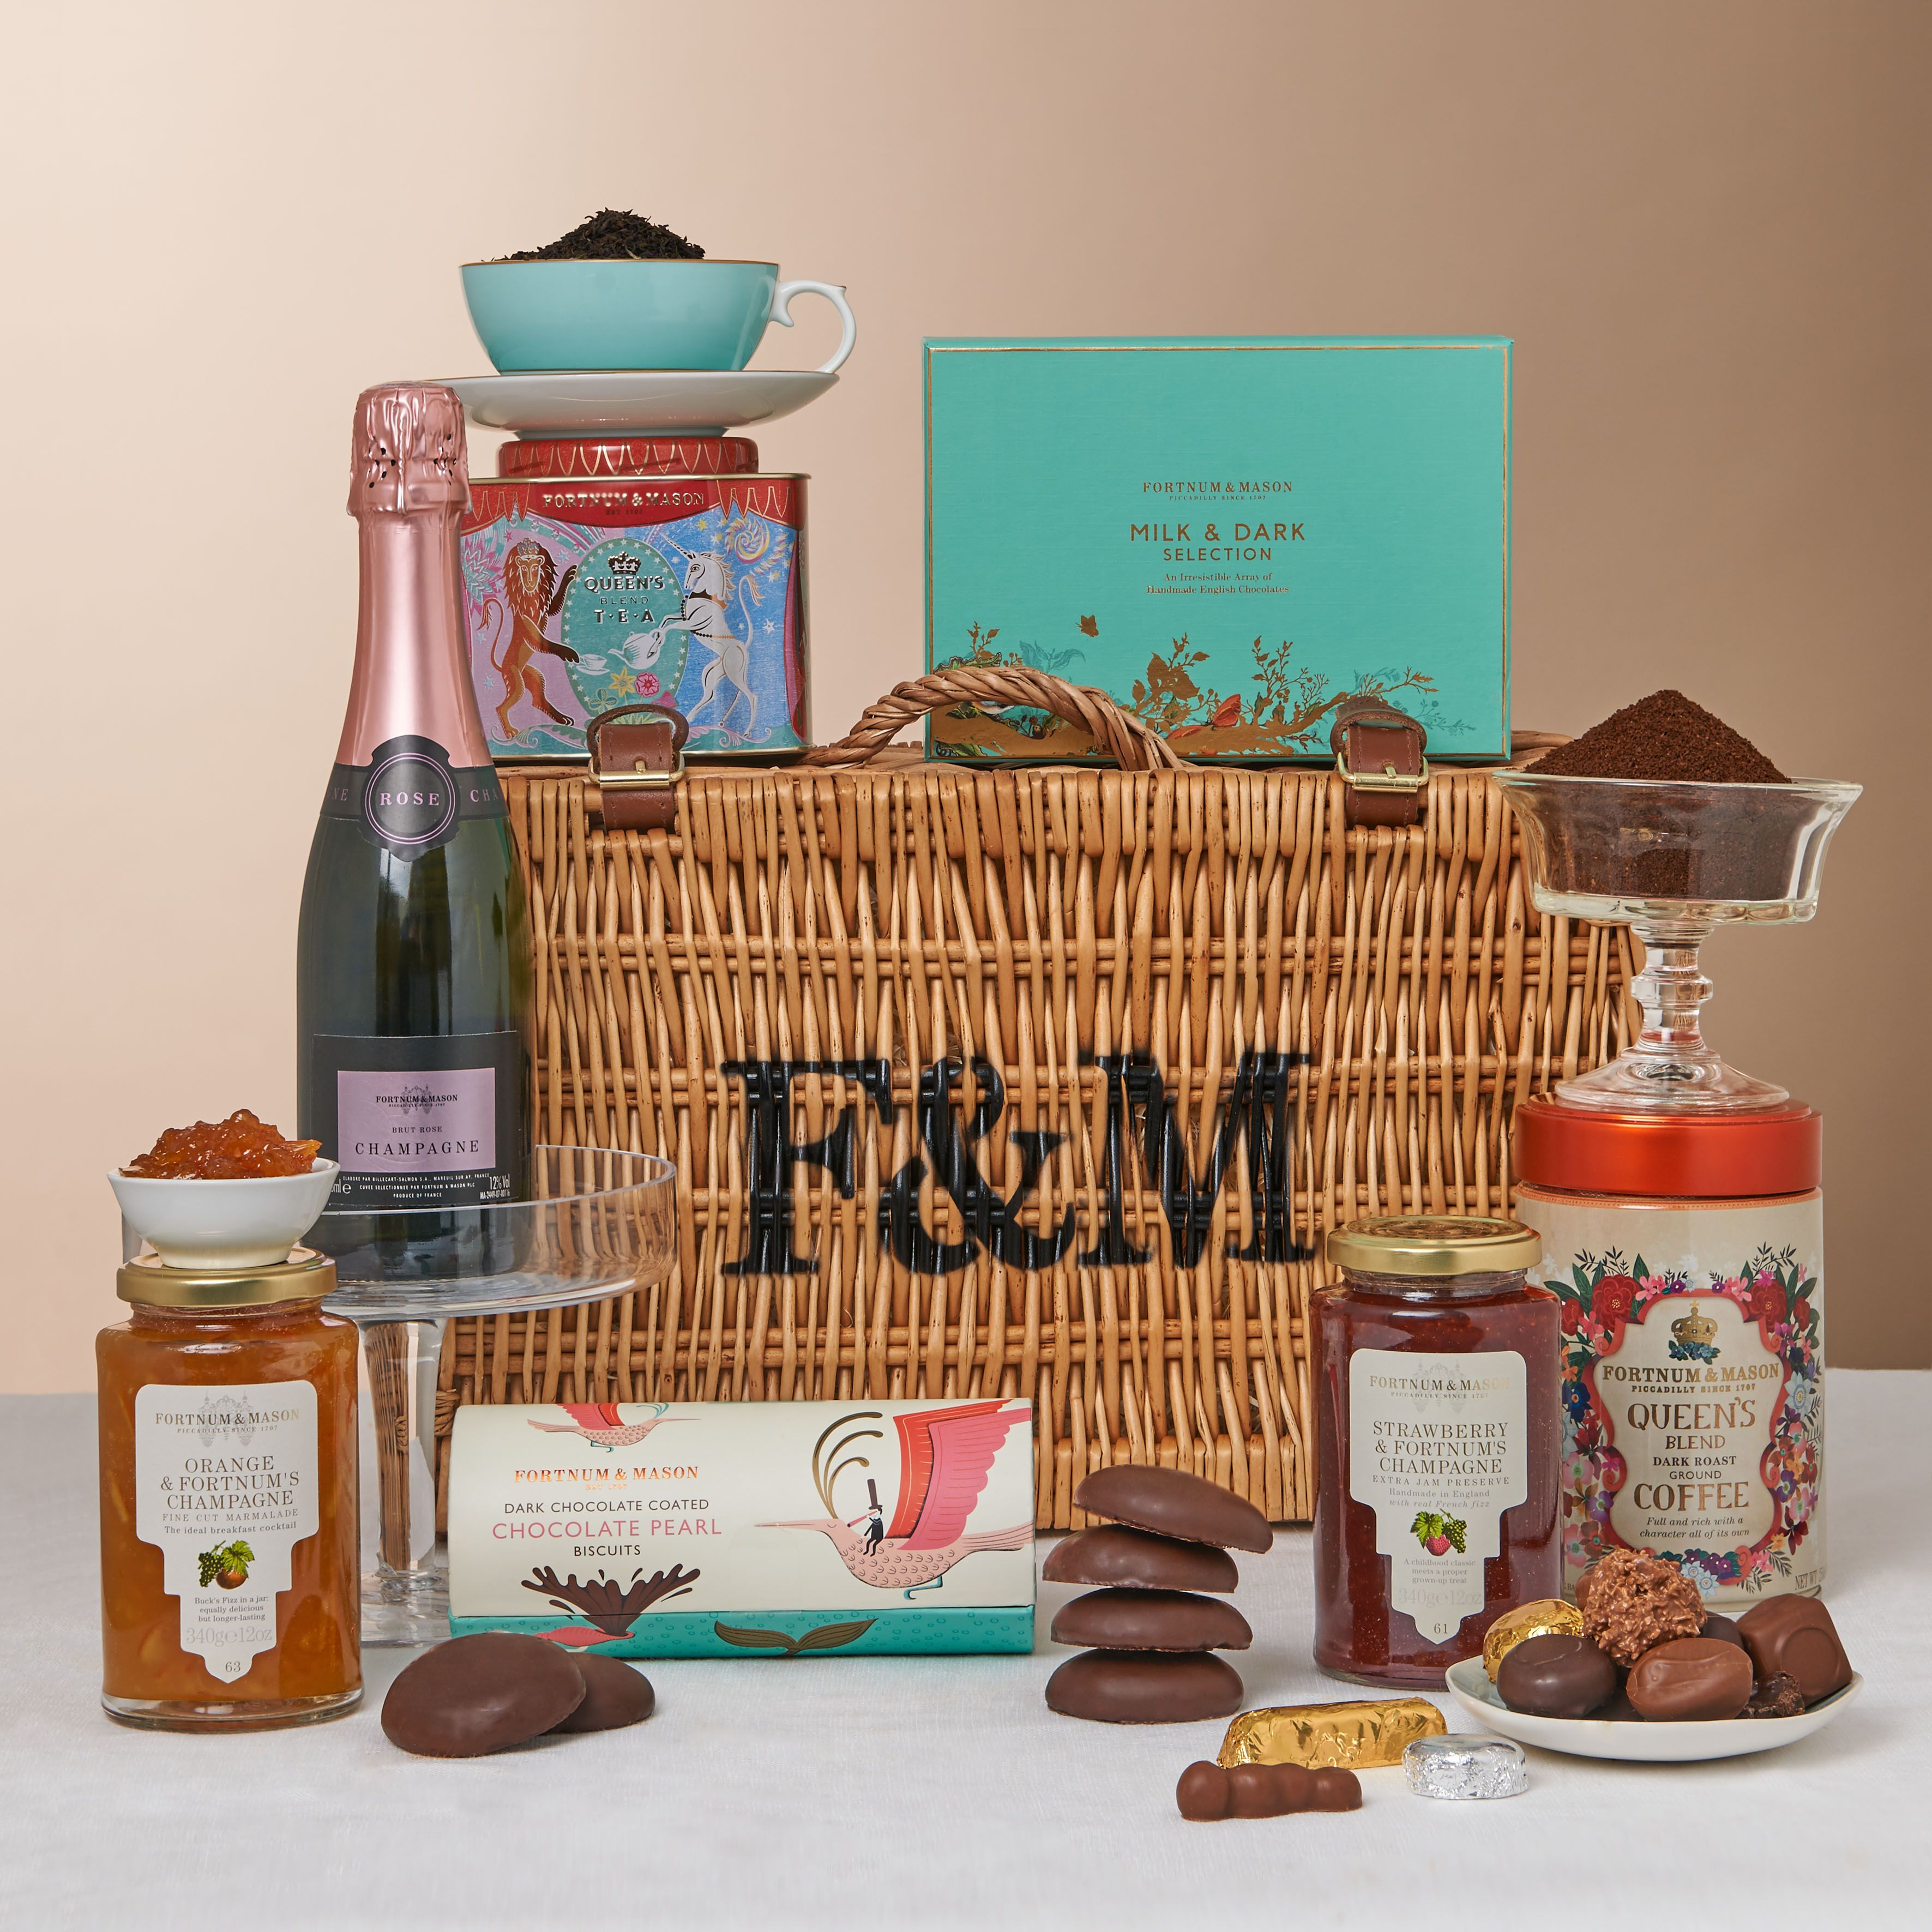 Wedding Gift Hampers Uk: Pin By Fortnum & Mason On Hampers At Fortnum & Mason